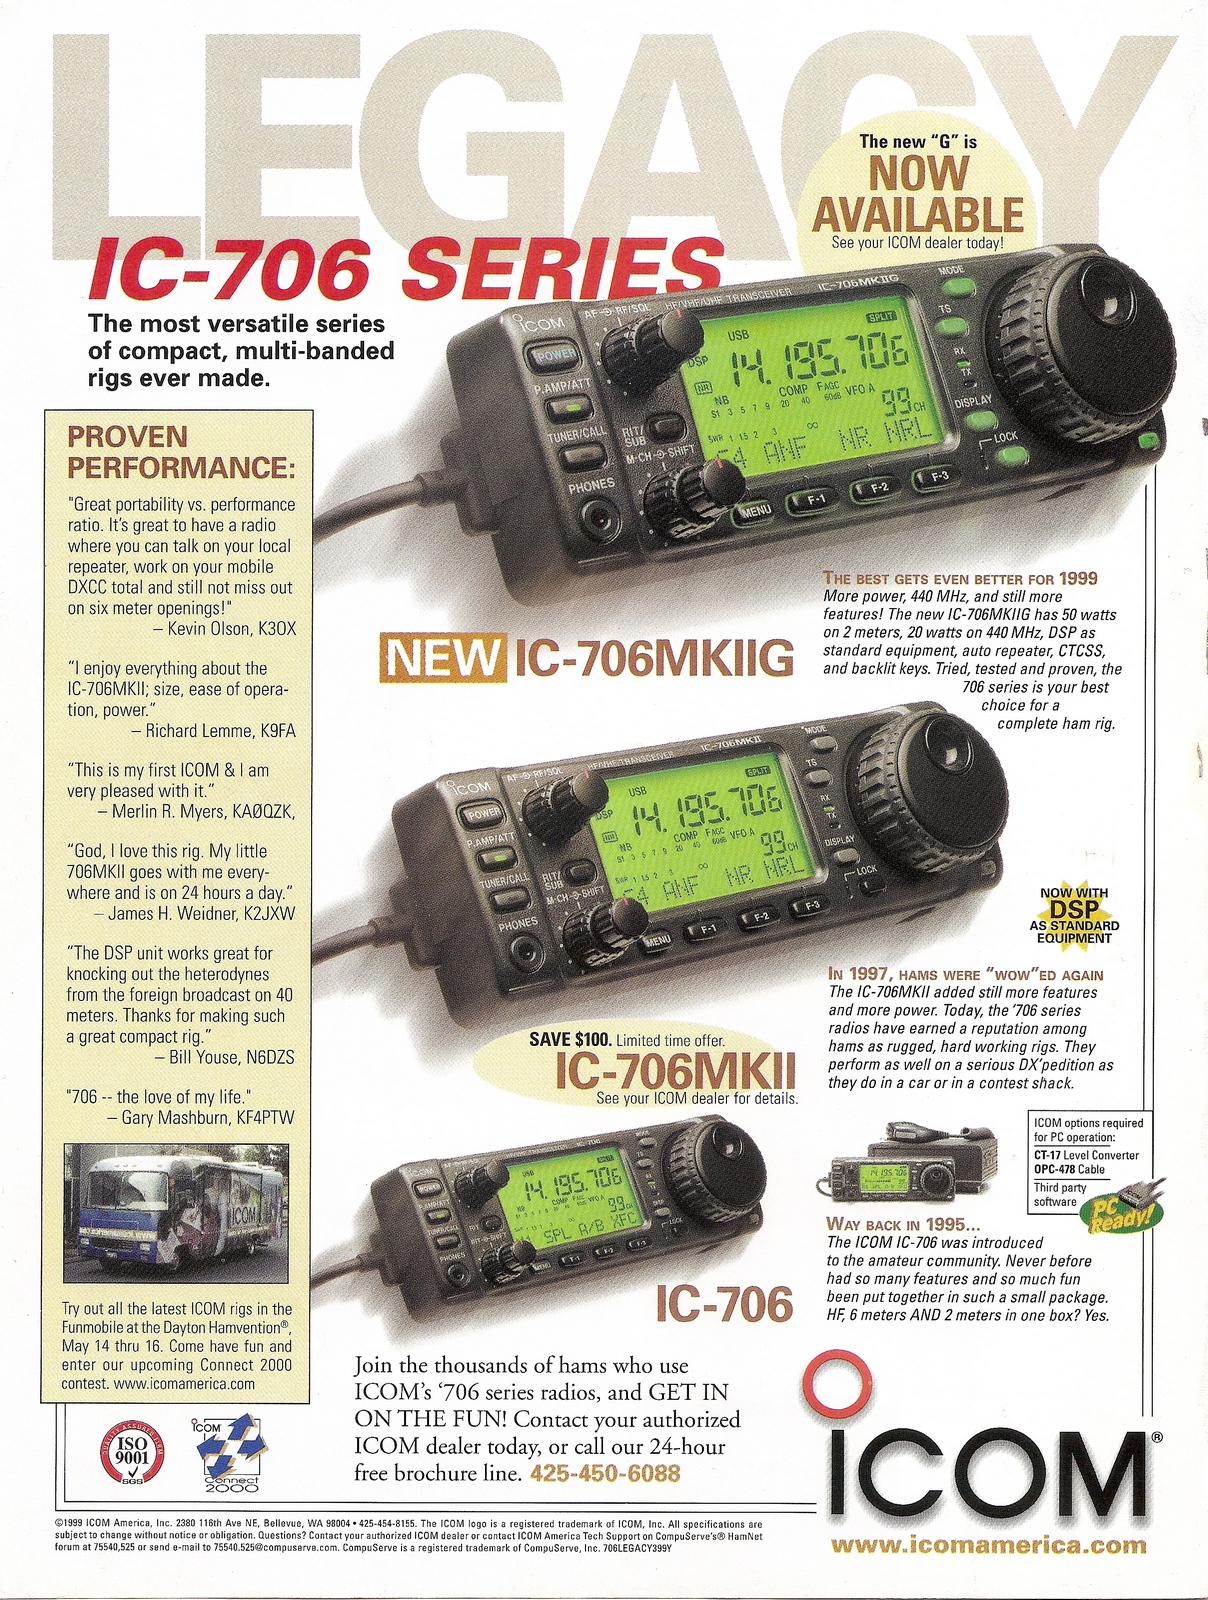 This advertisement from May 1999 QST shows the lineage of the IC-706MkIIG. I